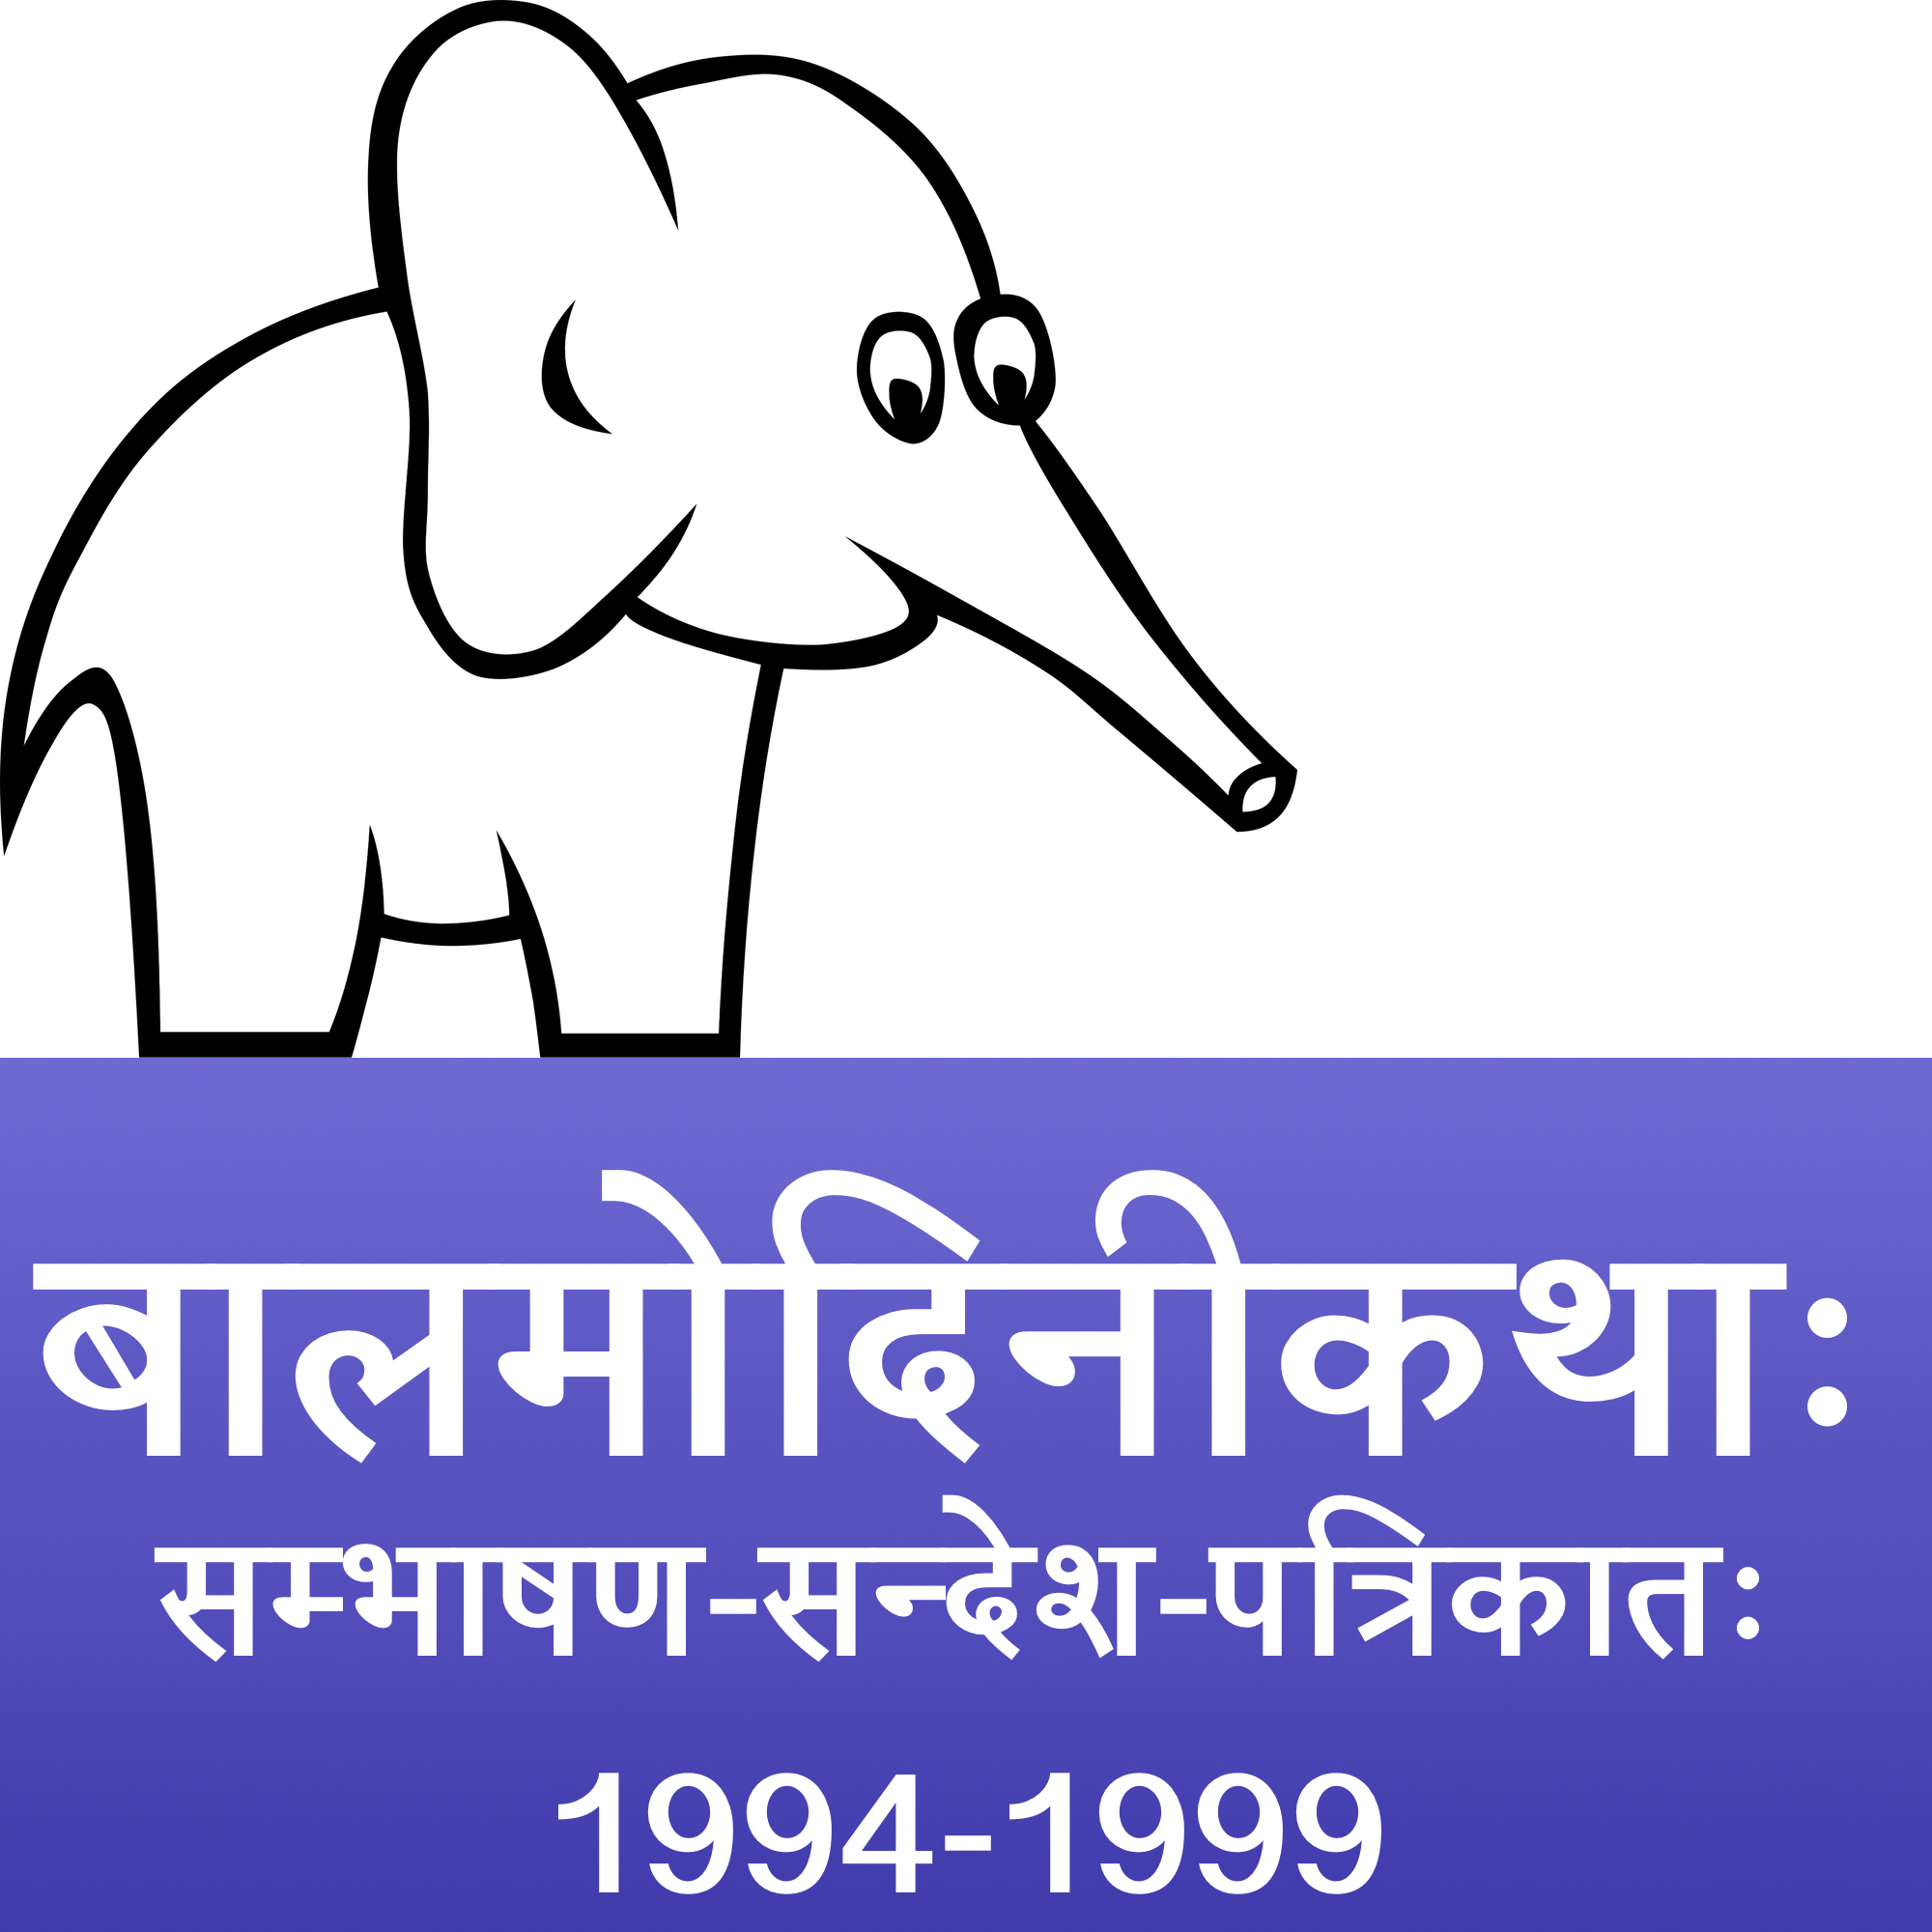 bAlamodinI Children's Stories in Sanskrit (1994 to 1995)